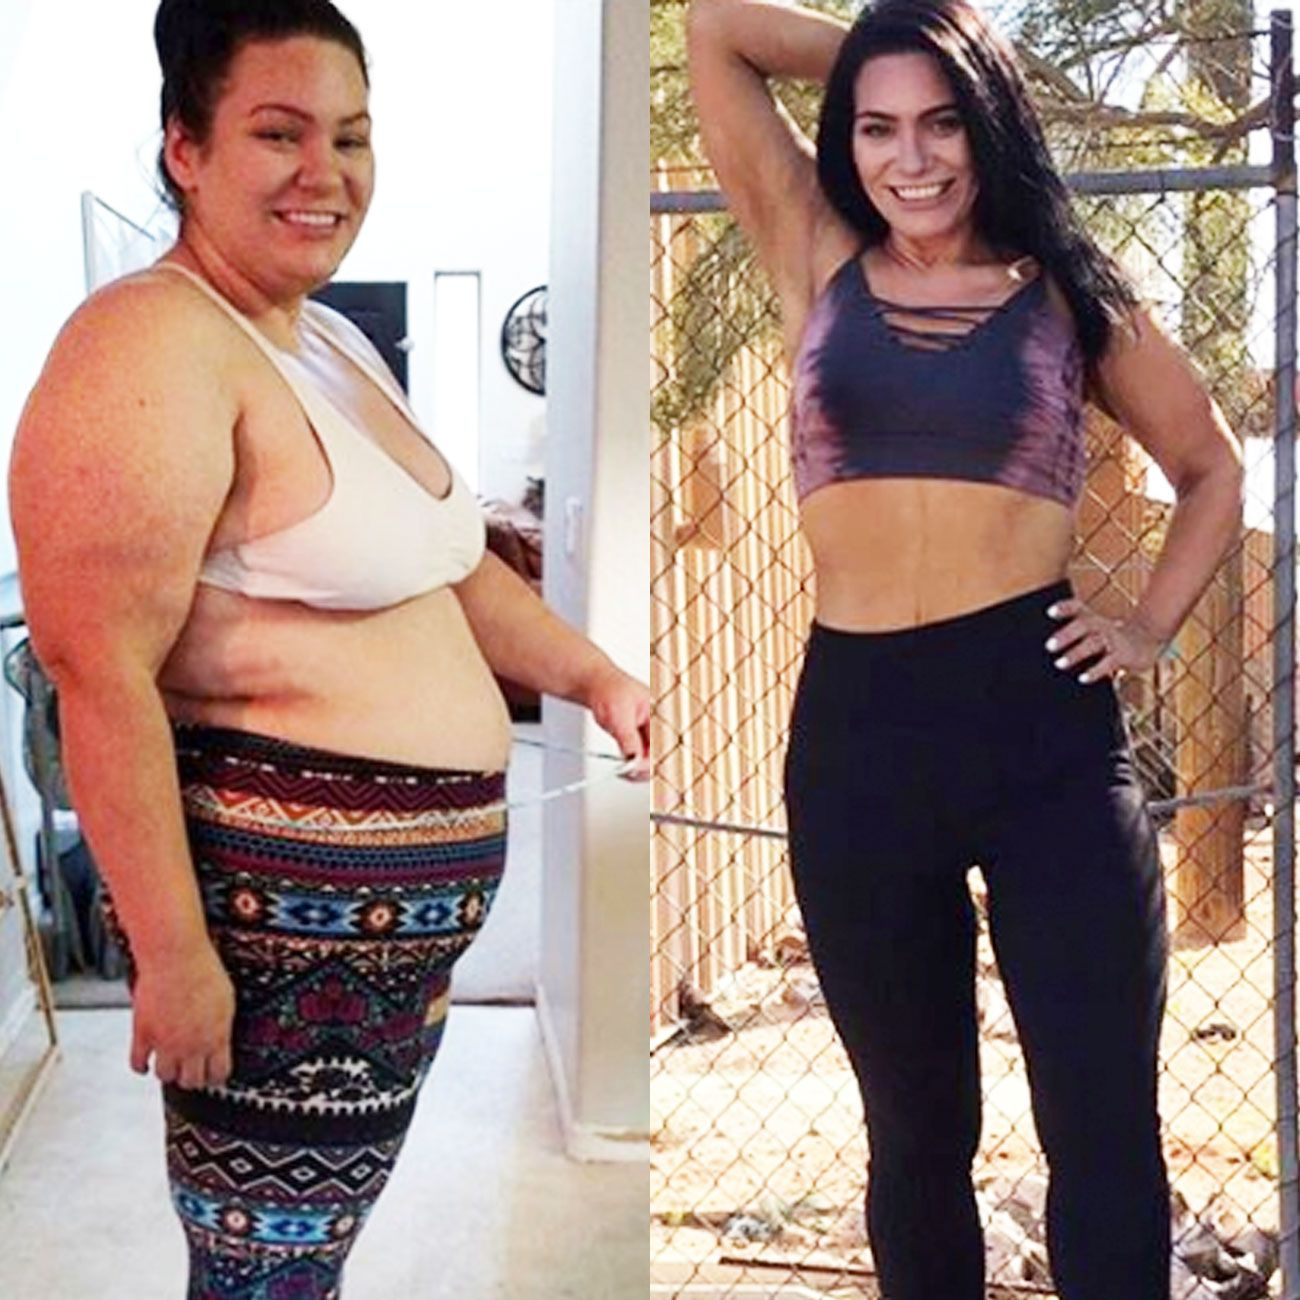 'A 'Lazy' Version of the Keto Diet Helped Me Lose Nearly 150 Pounds'